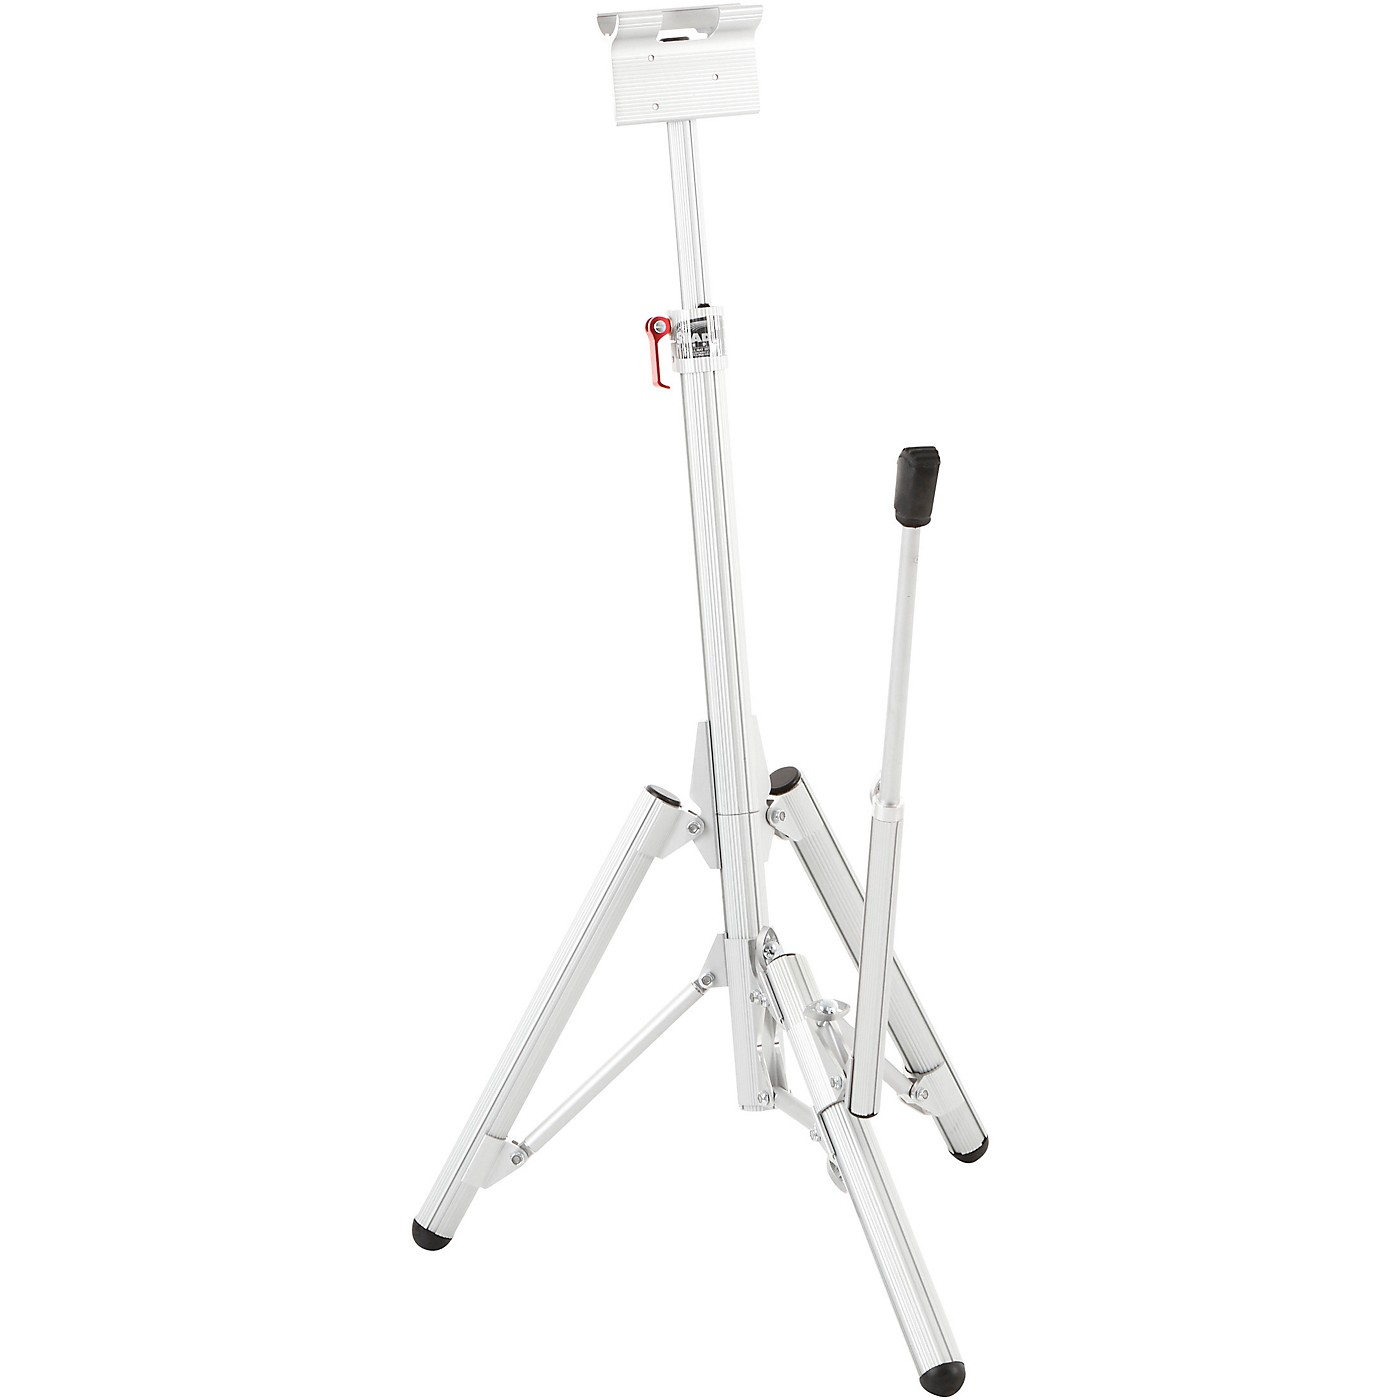 Yamaha RM-SHQA-MR Modular AIRlift Stadium Hardware Marching Stand for Tenor thumbnail